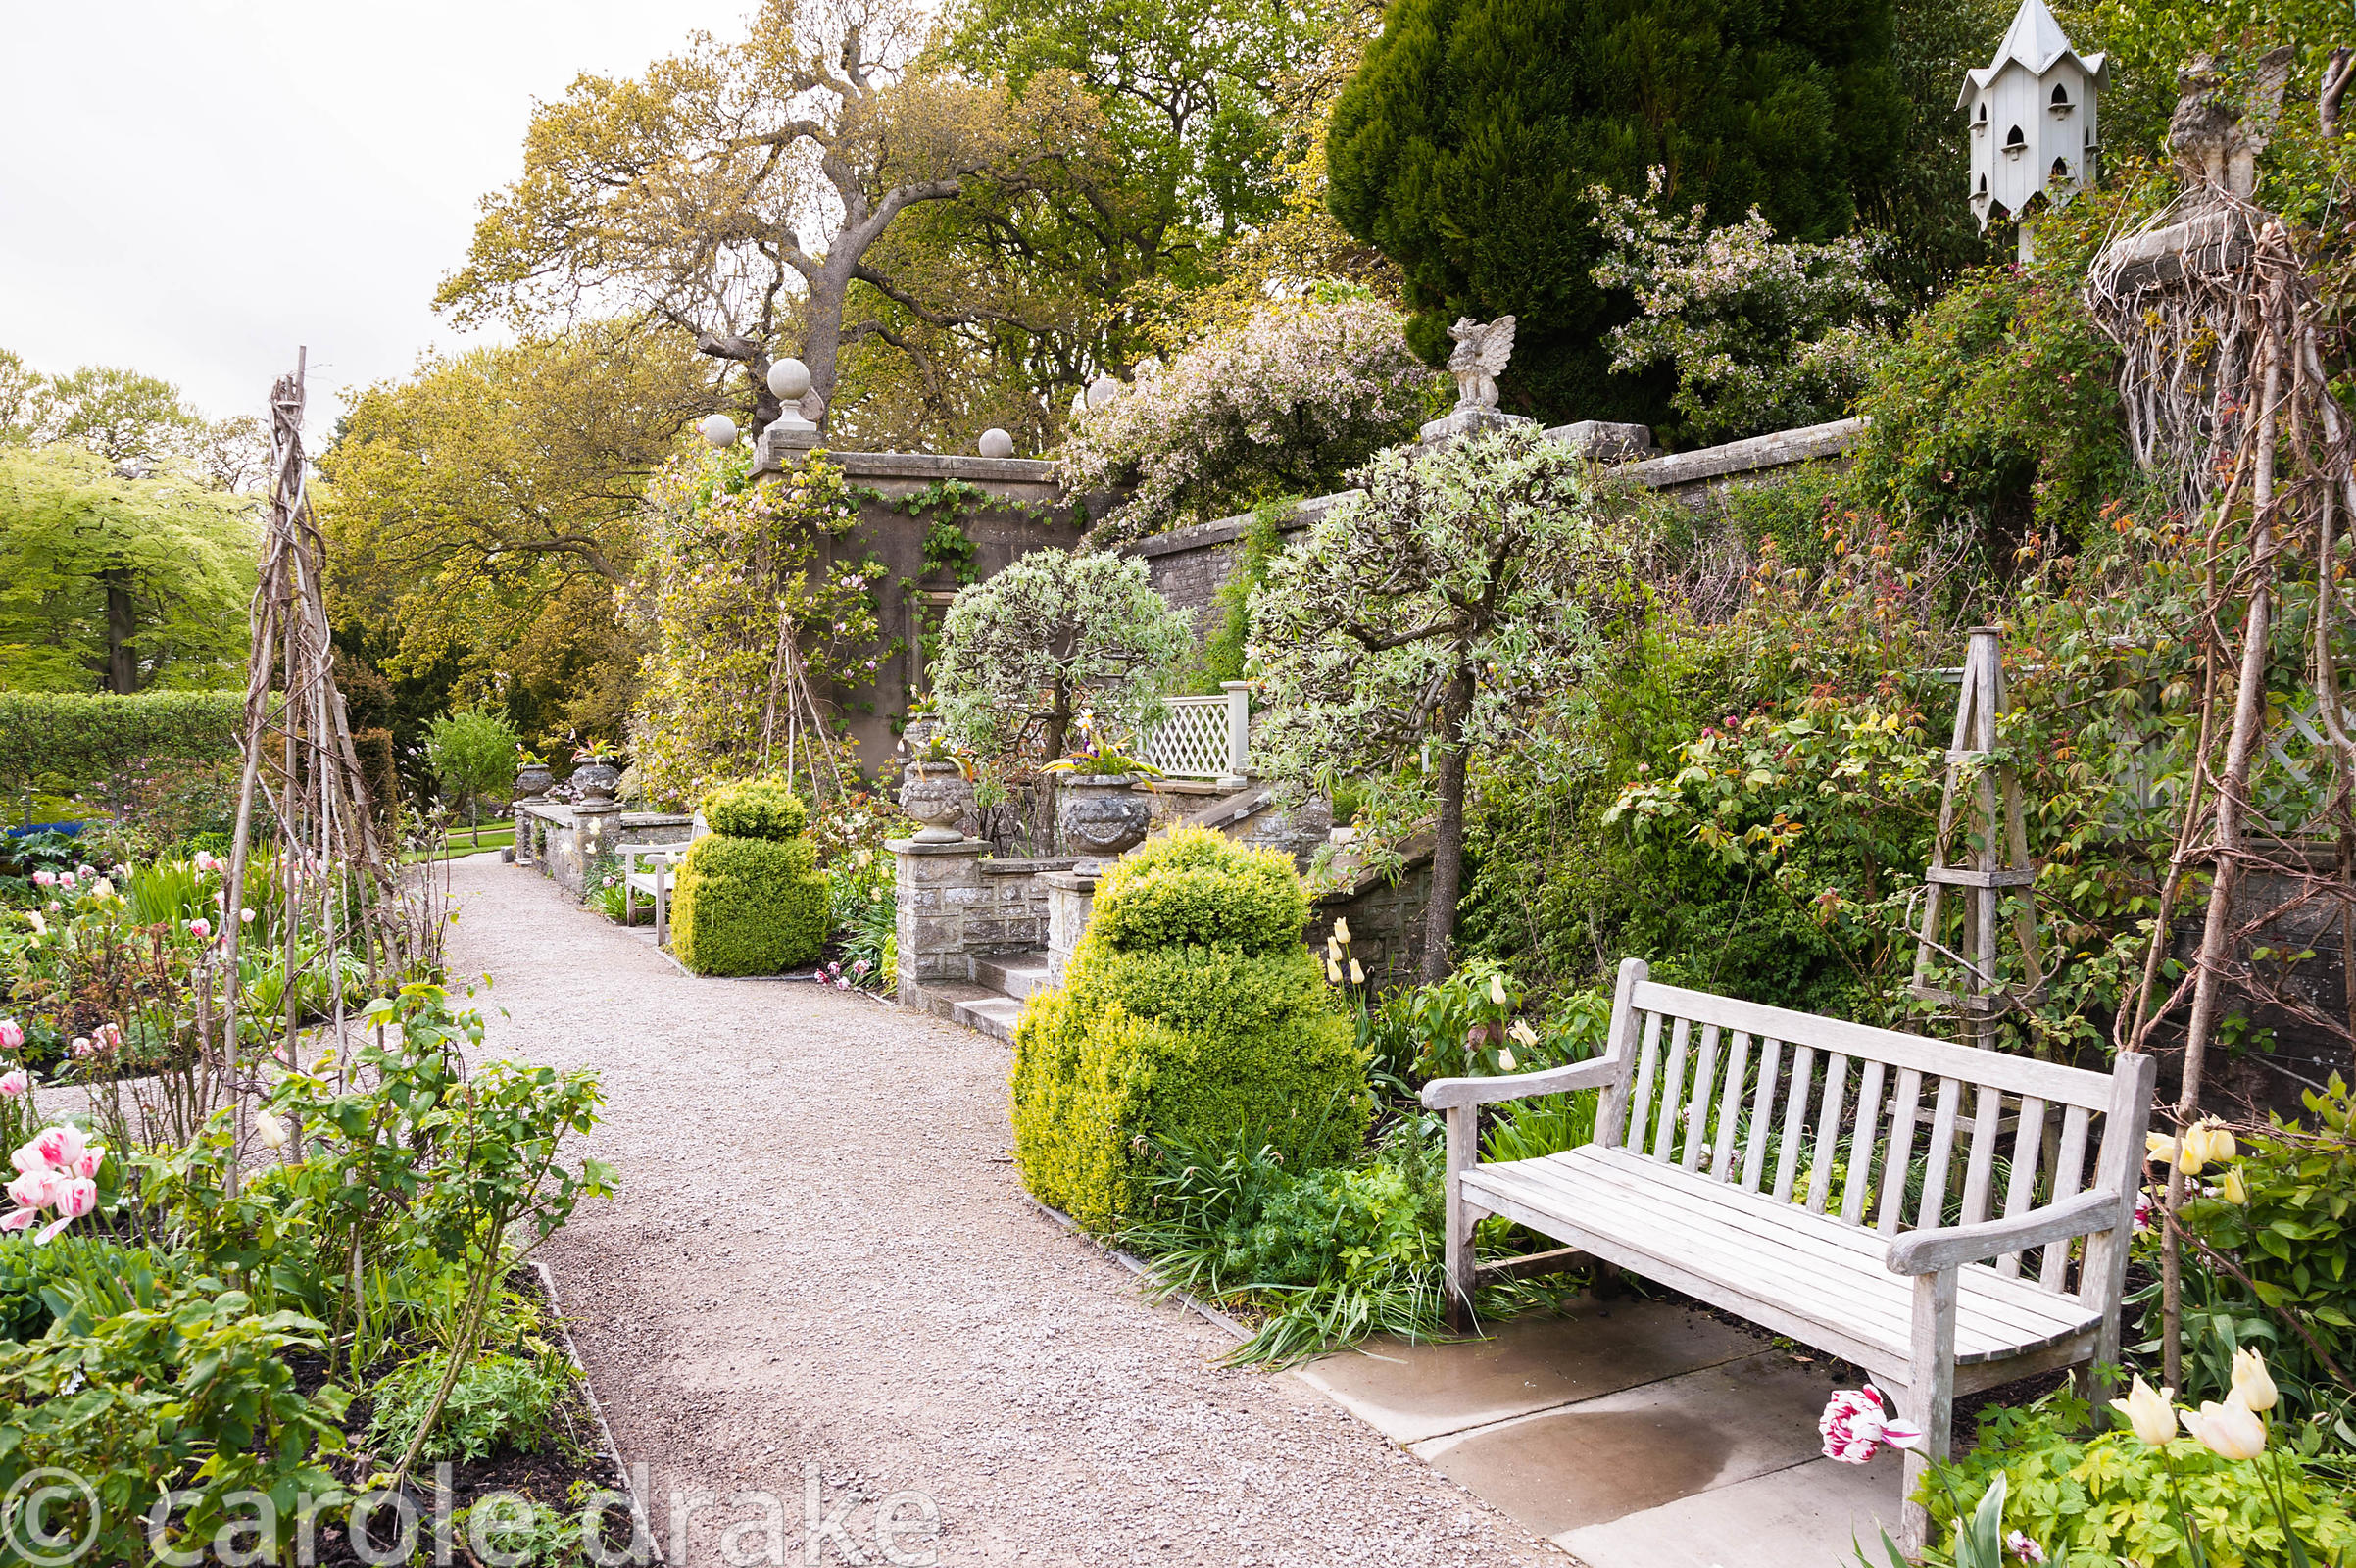 The Sunken Garden features clipped silver pears. Holker Hall, Grange over Sands, Cumbria, UK